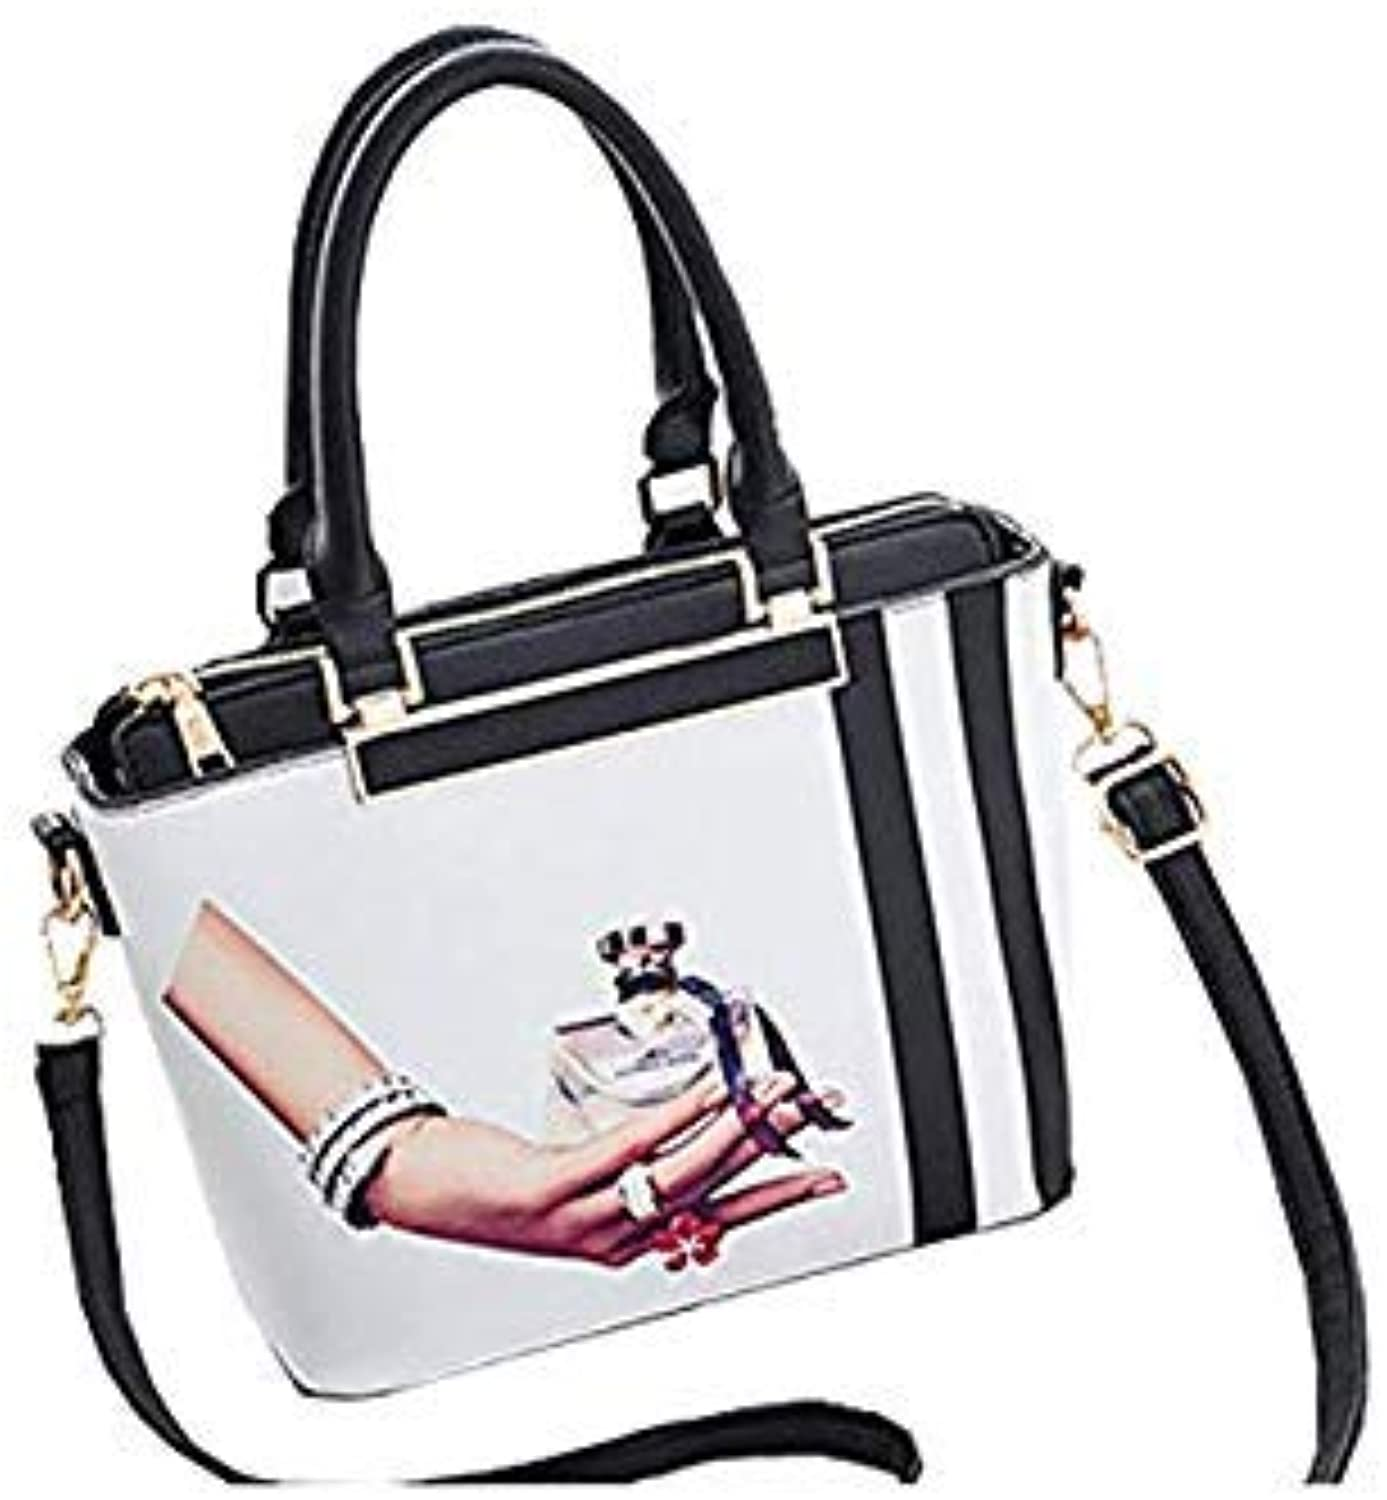 Bloomerang Luxury Women Lipstick Print Handbag Tote Casual Daily All-Purpose Shoulder Bag Top-Handle Design for Lady Elegant Tote Bag color Frost White